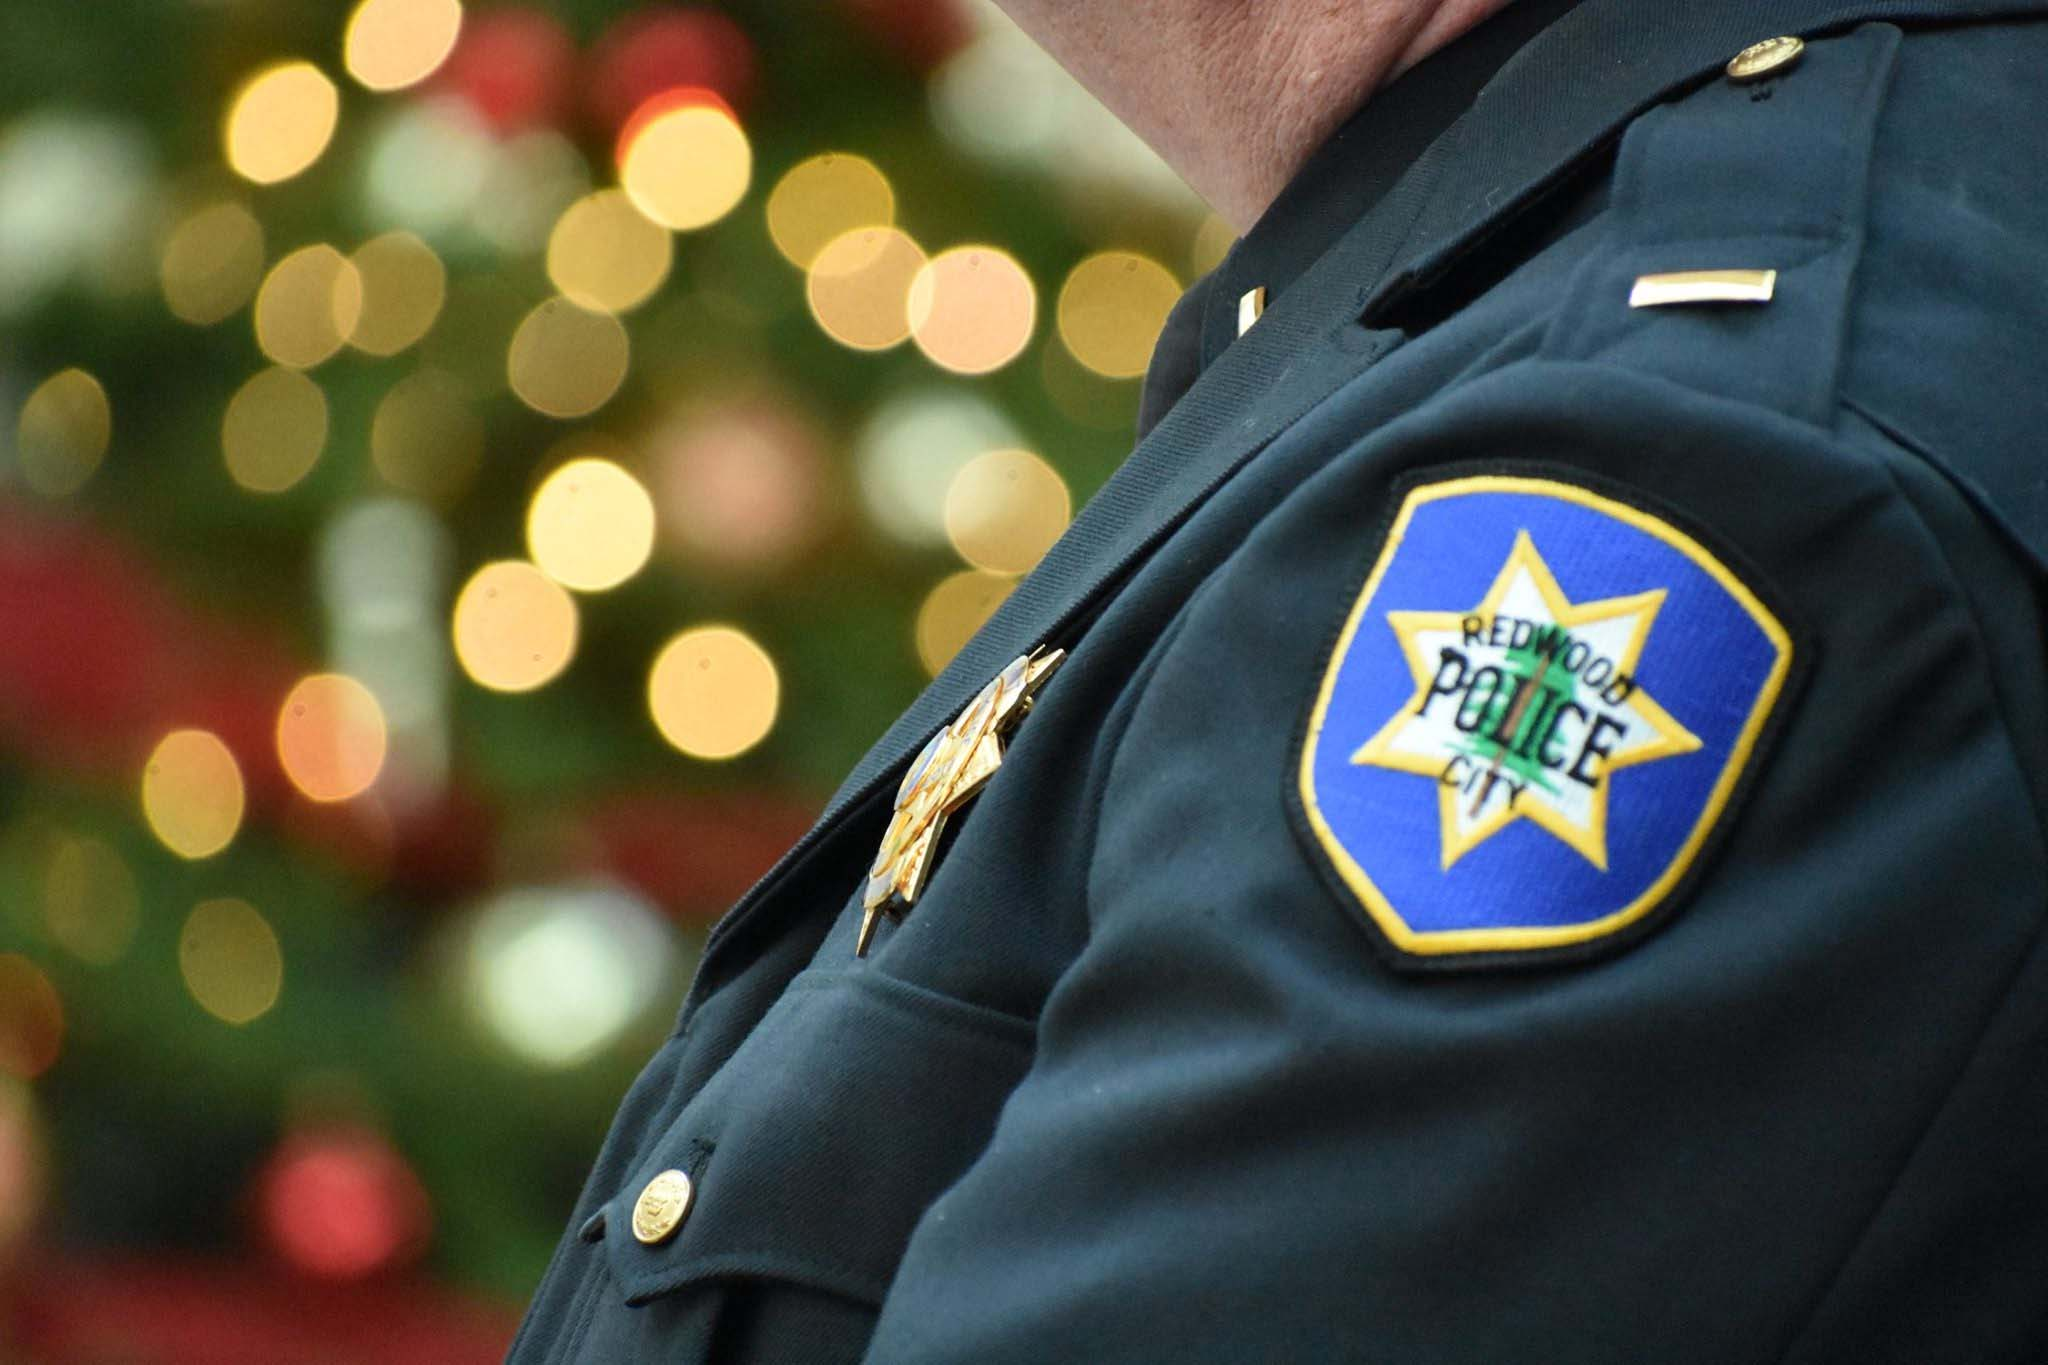 Redwood City police holding holiday DUI saturation patrols